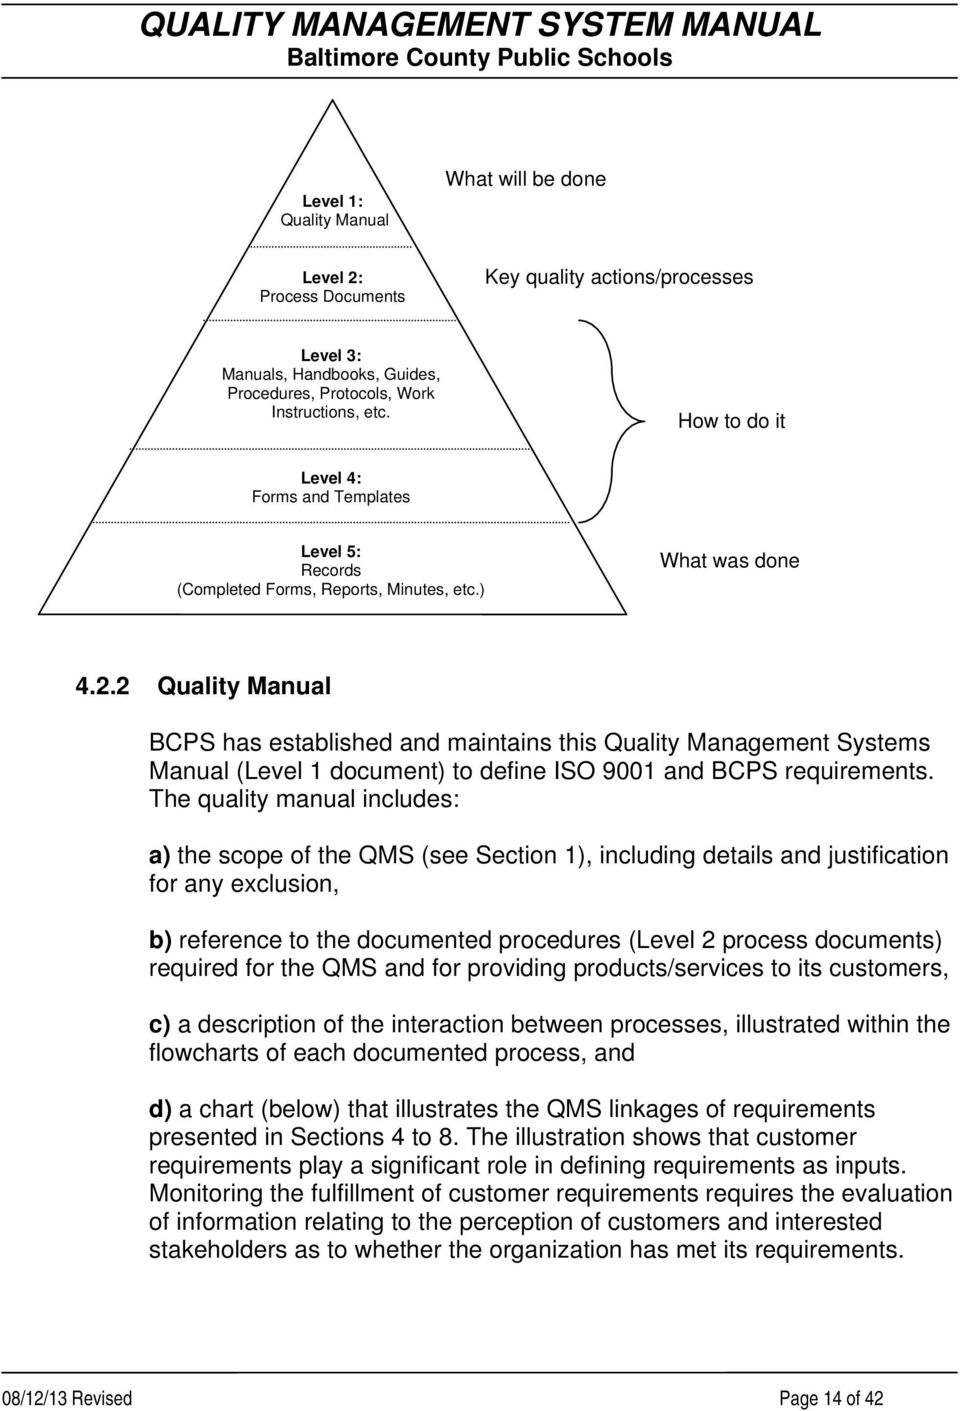 2 Quality Manual BCPS has established and maintains this Quality Management Systems Manual (Level 1 document) to define ISO 9001 and BCPS requirements.